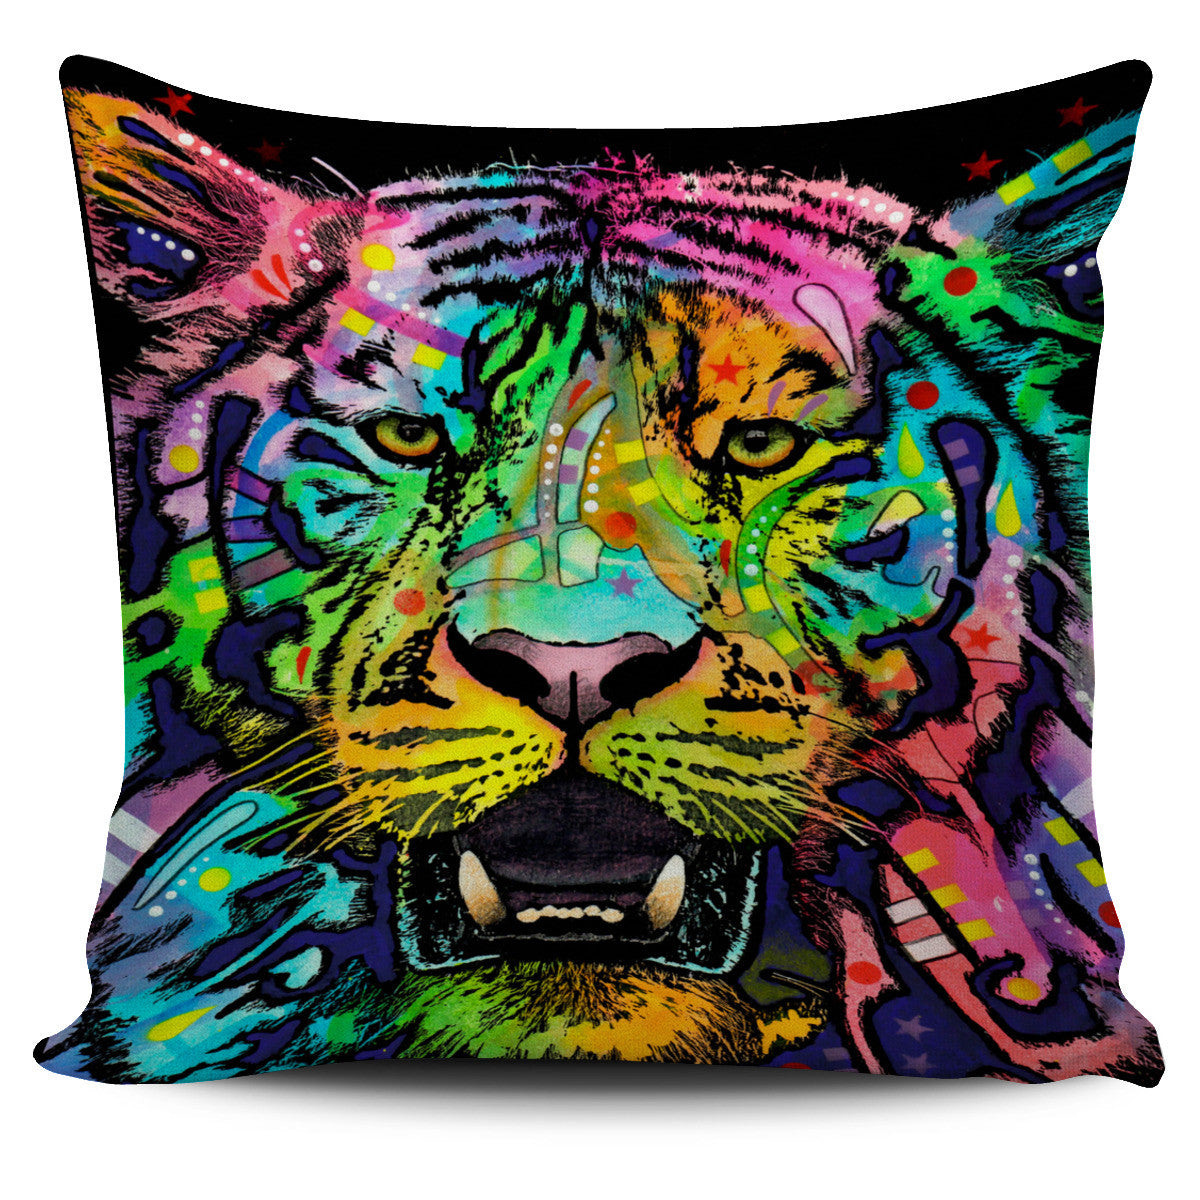 Tiger Series Pillow Covers Offer